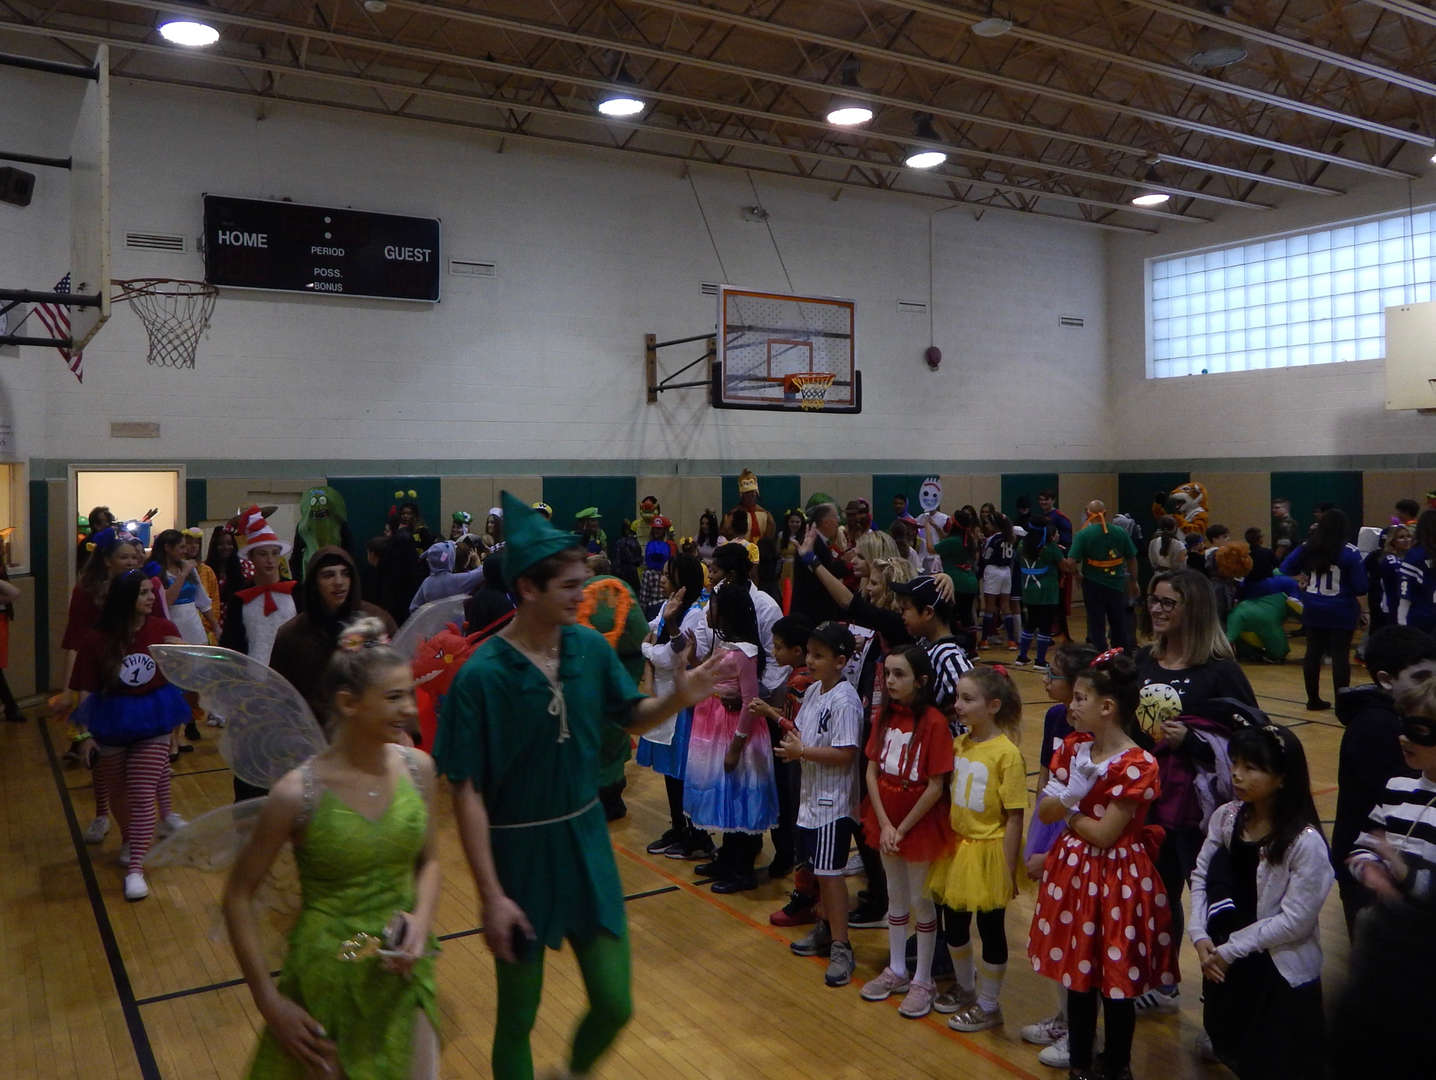 students in costumes marching and watching parade